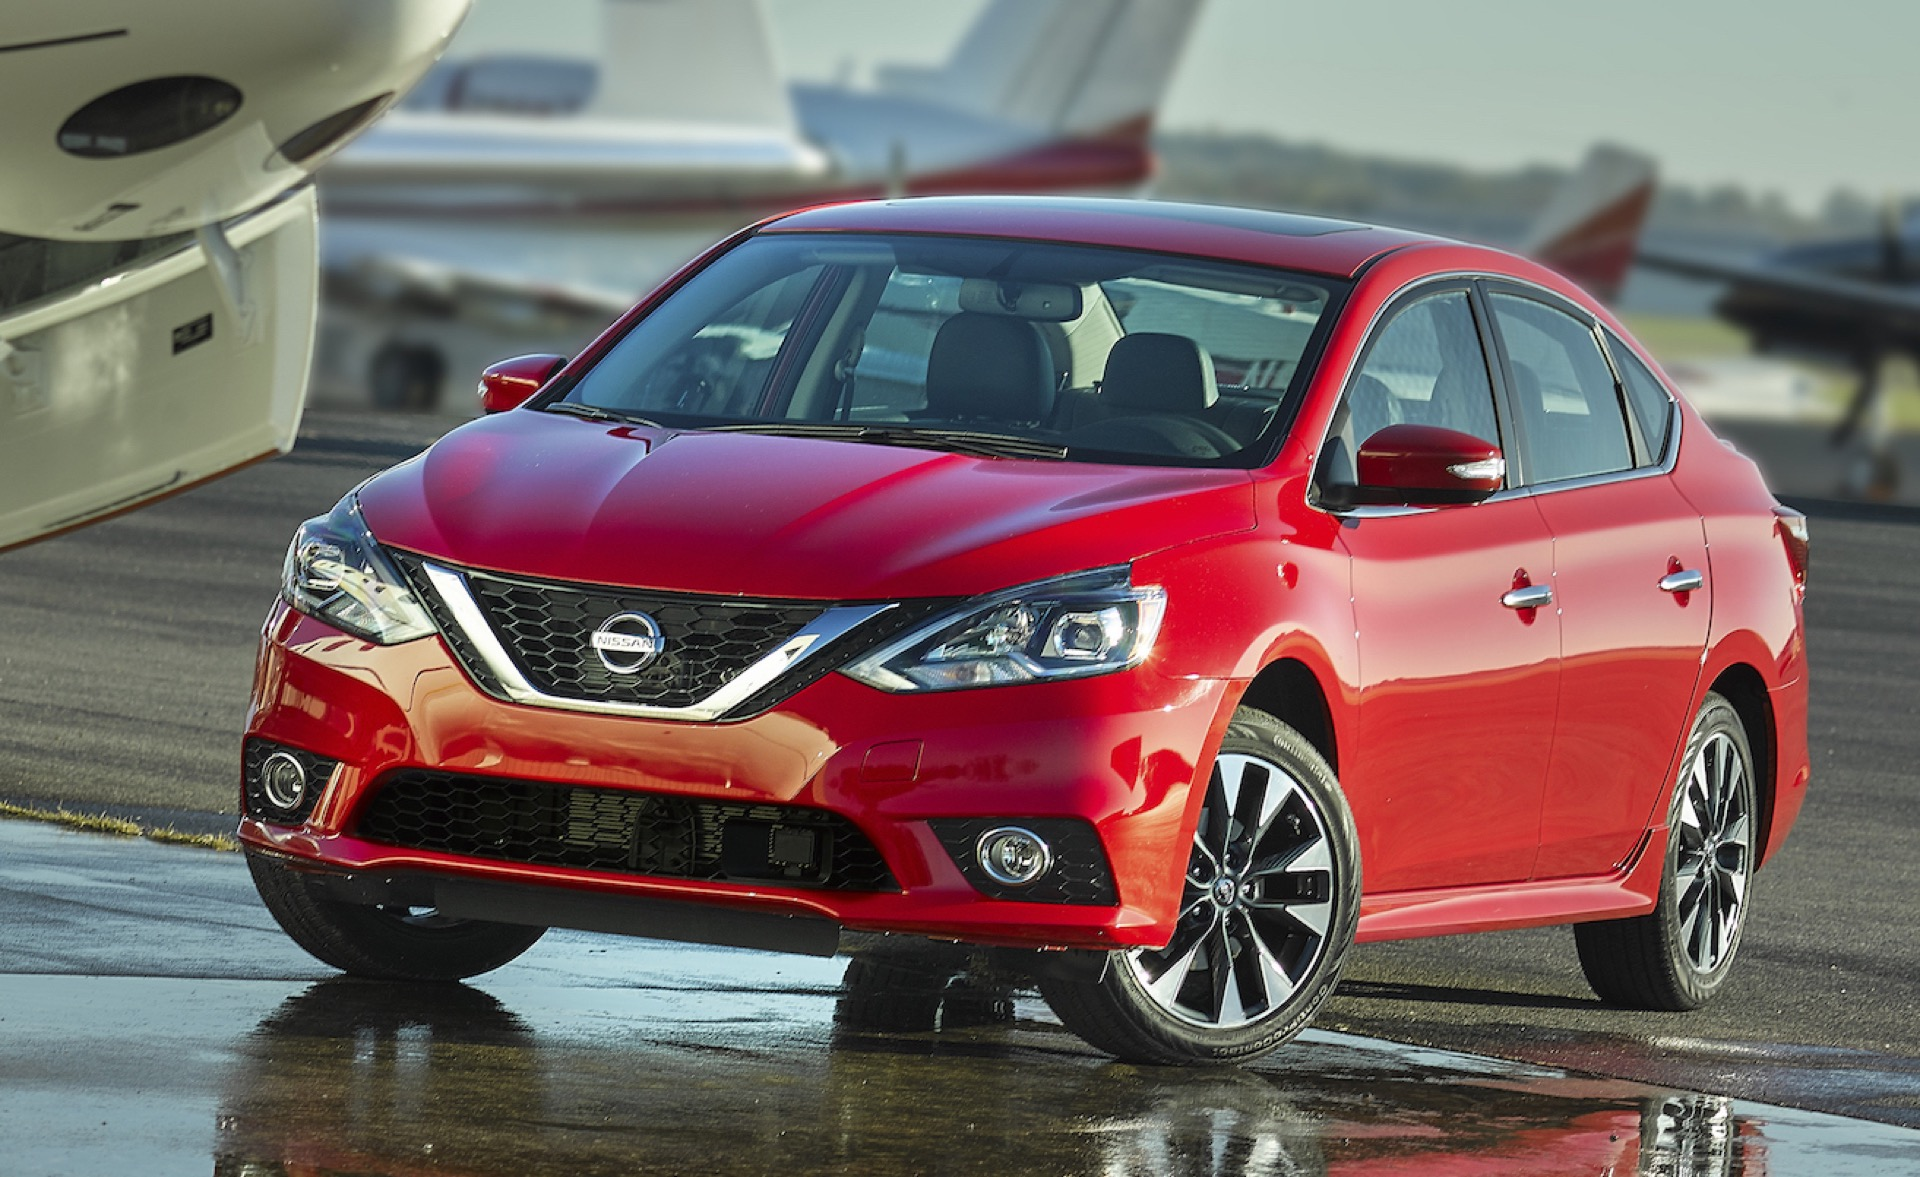 2016 Nissan Sentra Review, Ratings, Specs, Prices, and ...